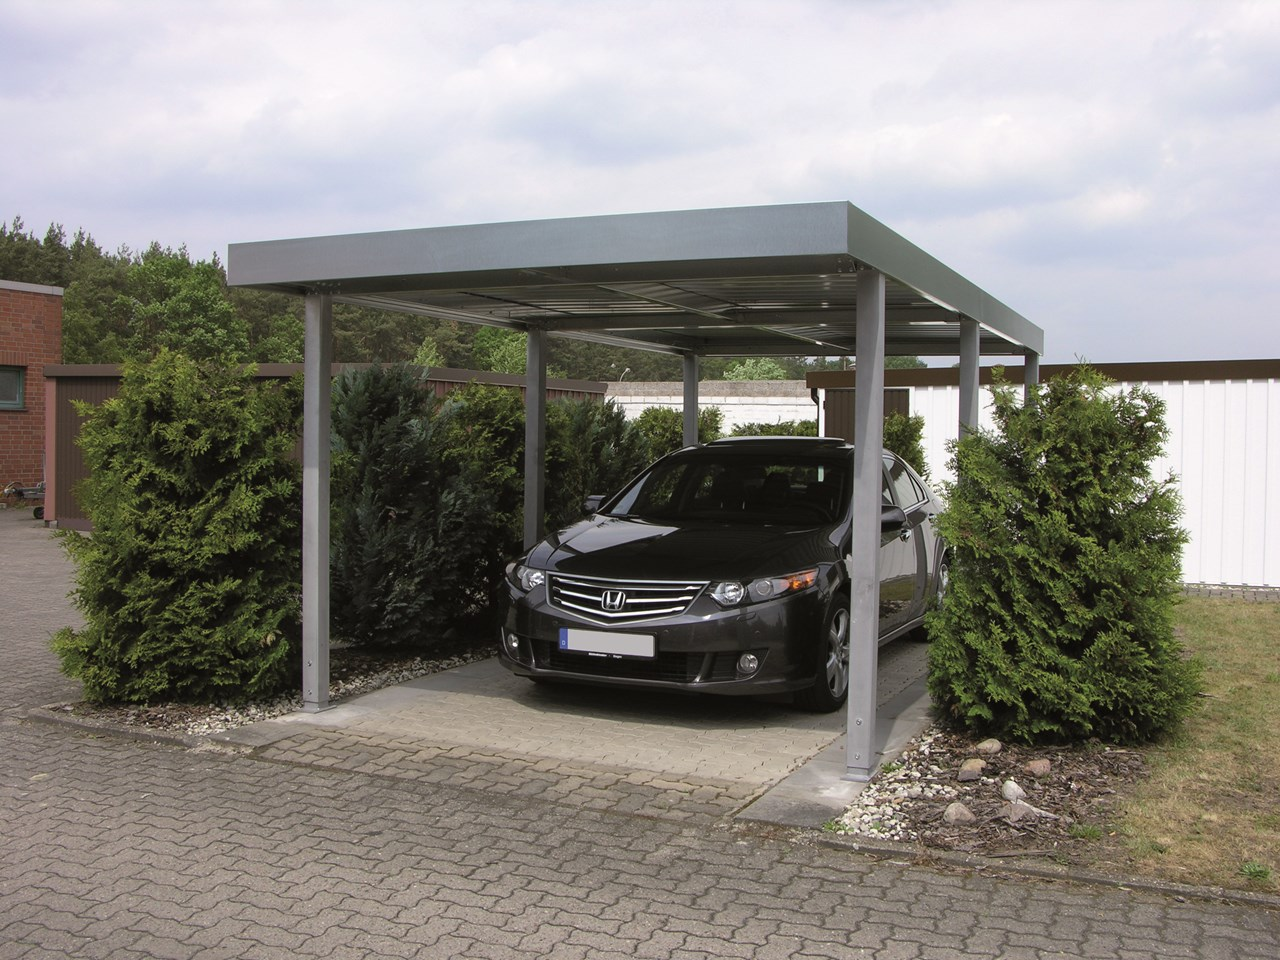 siebau carport der carport von siebau modernes design individuell f r ihr grundst ck siebau. Black Bedroom Furniture Sets. Home Design Ideas